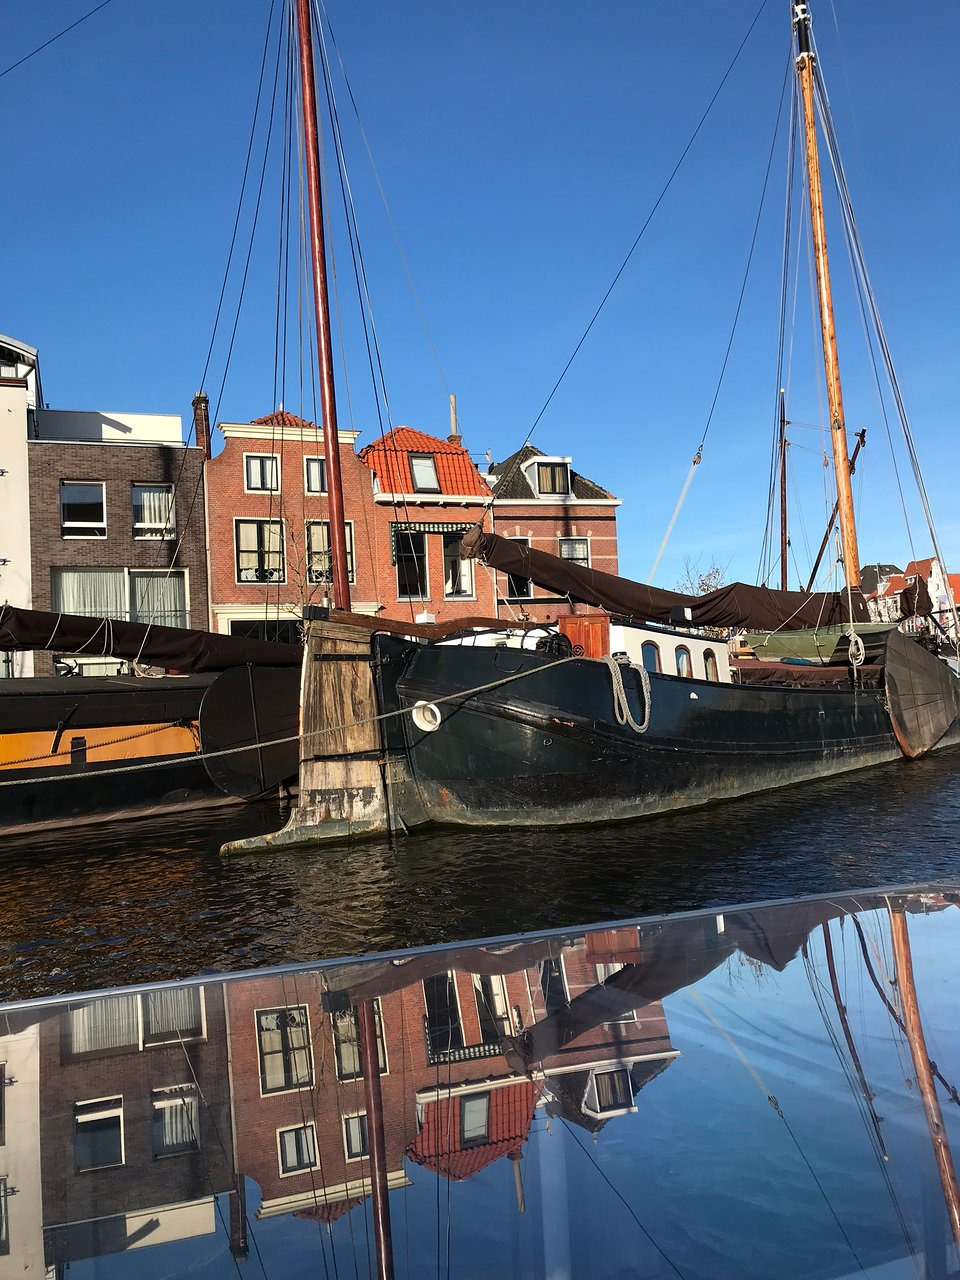 Leiden Water Tours - 2019 All You Need to Know Before You ...